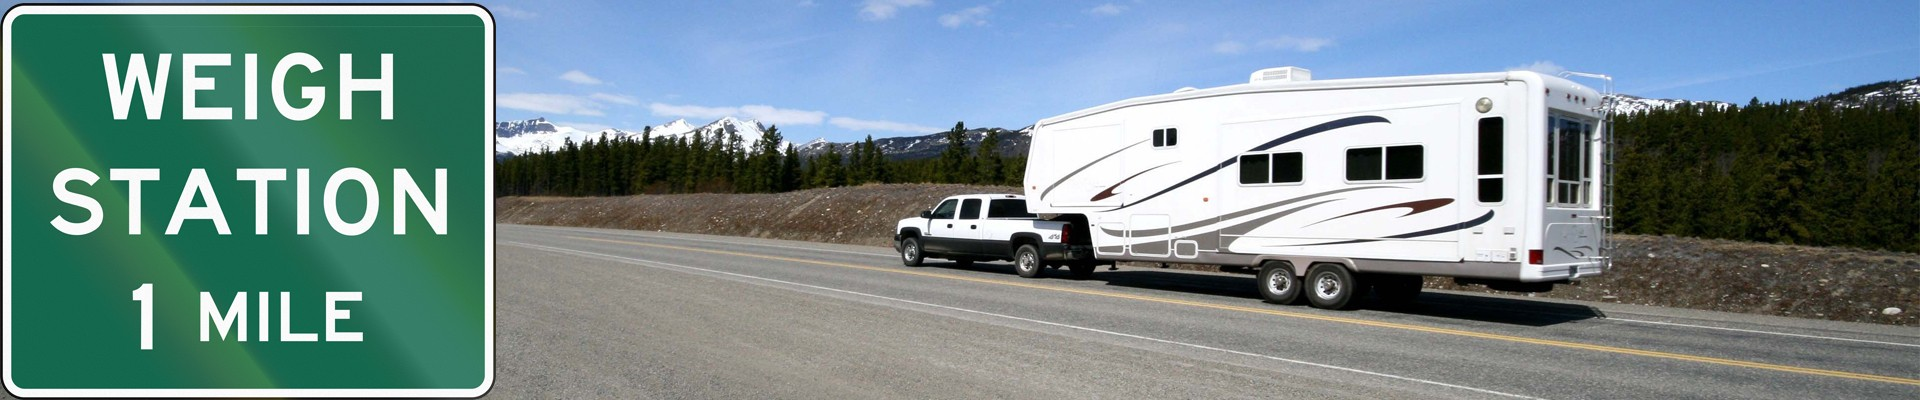 truck driving RV to weigh station